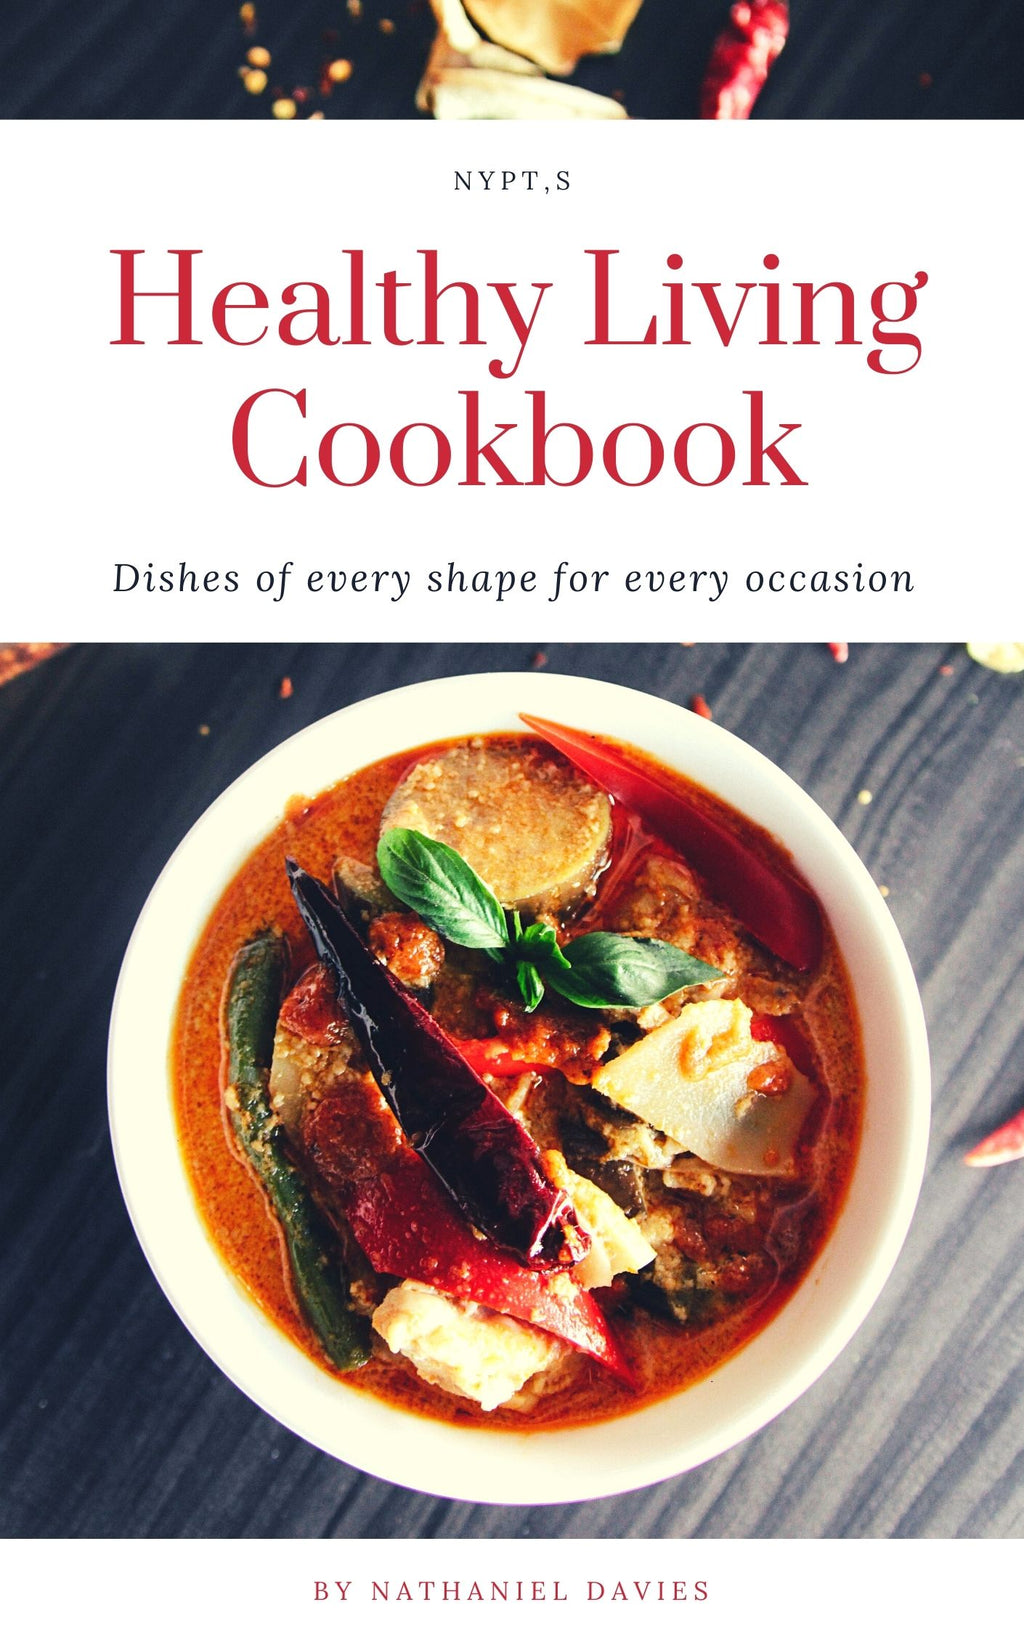 NYPT Healthy LivingCookbook - NYPersonalTraining